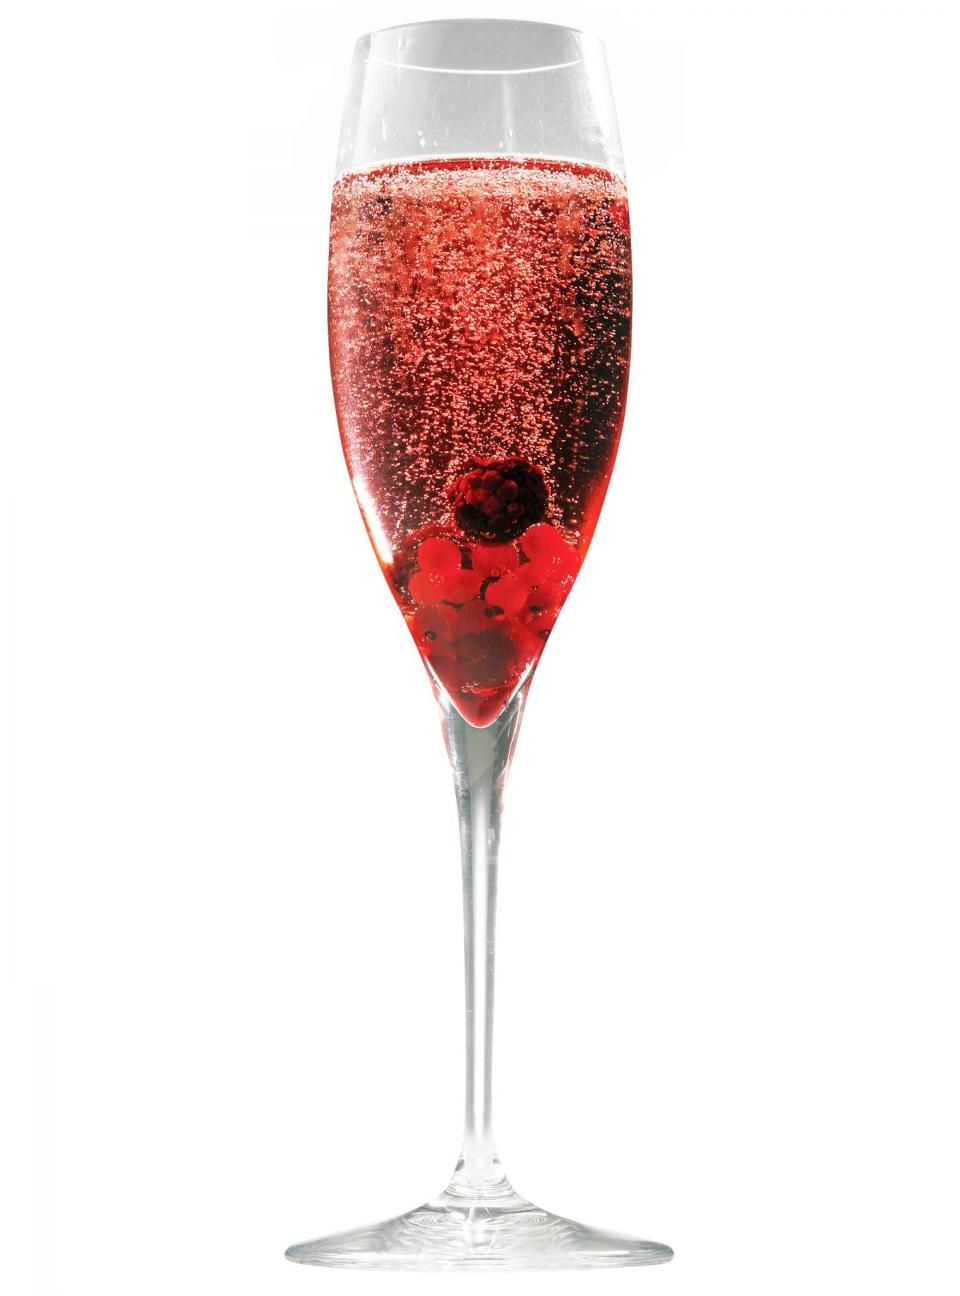 Kir Royale Ingredients 1 Ounce L Heritier Guyot Creme De Cassis 5 Ounces Domaine Carneros Brut Or Other Dry Red Champagne Dry Sparkling Champagne Cocktail